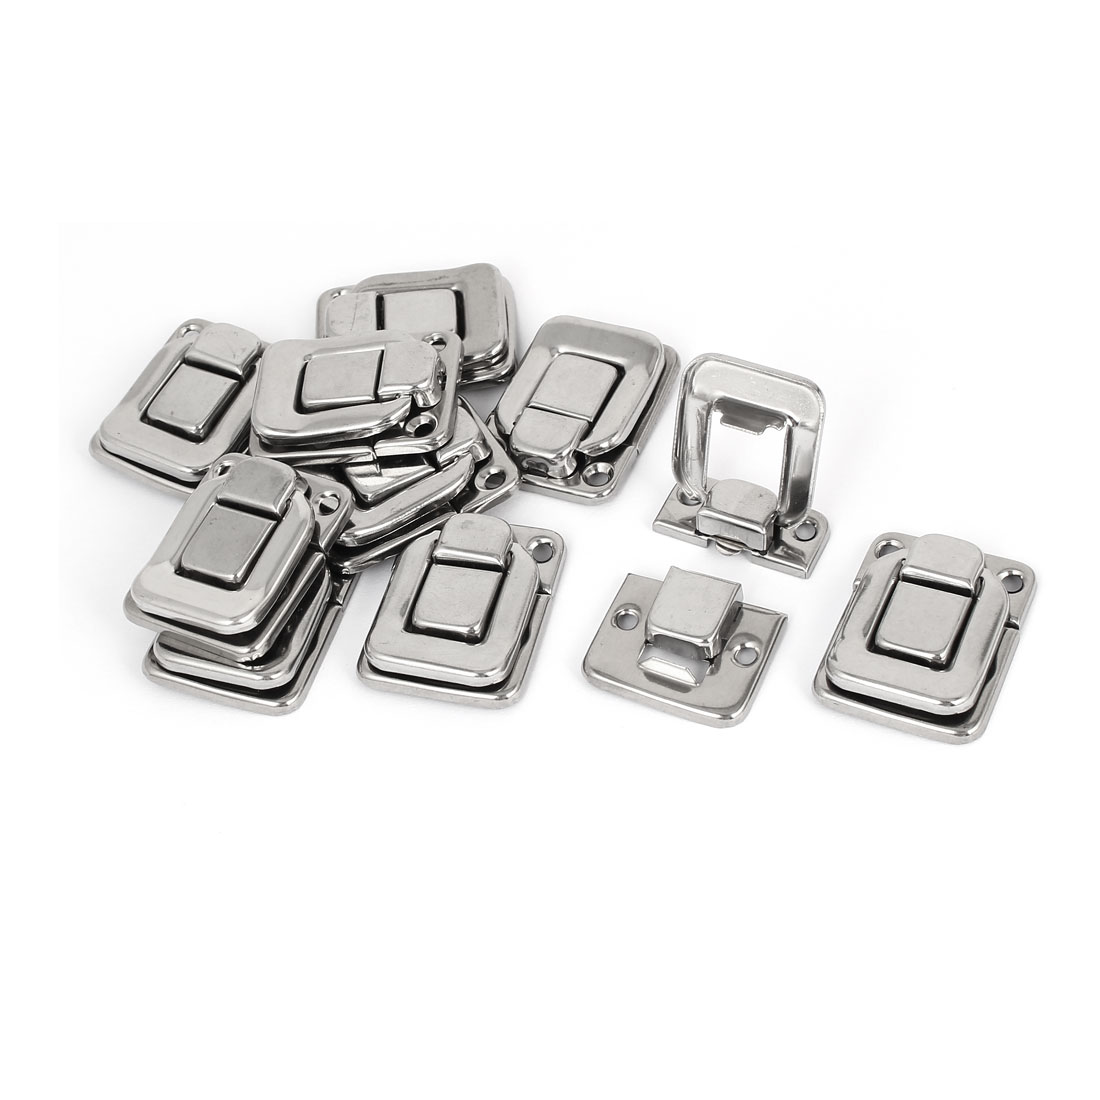 Toolbox Stainless Steel Box Toggle Latch Hasp 38mm Length 10pcs